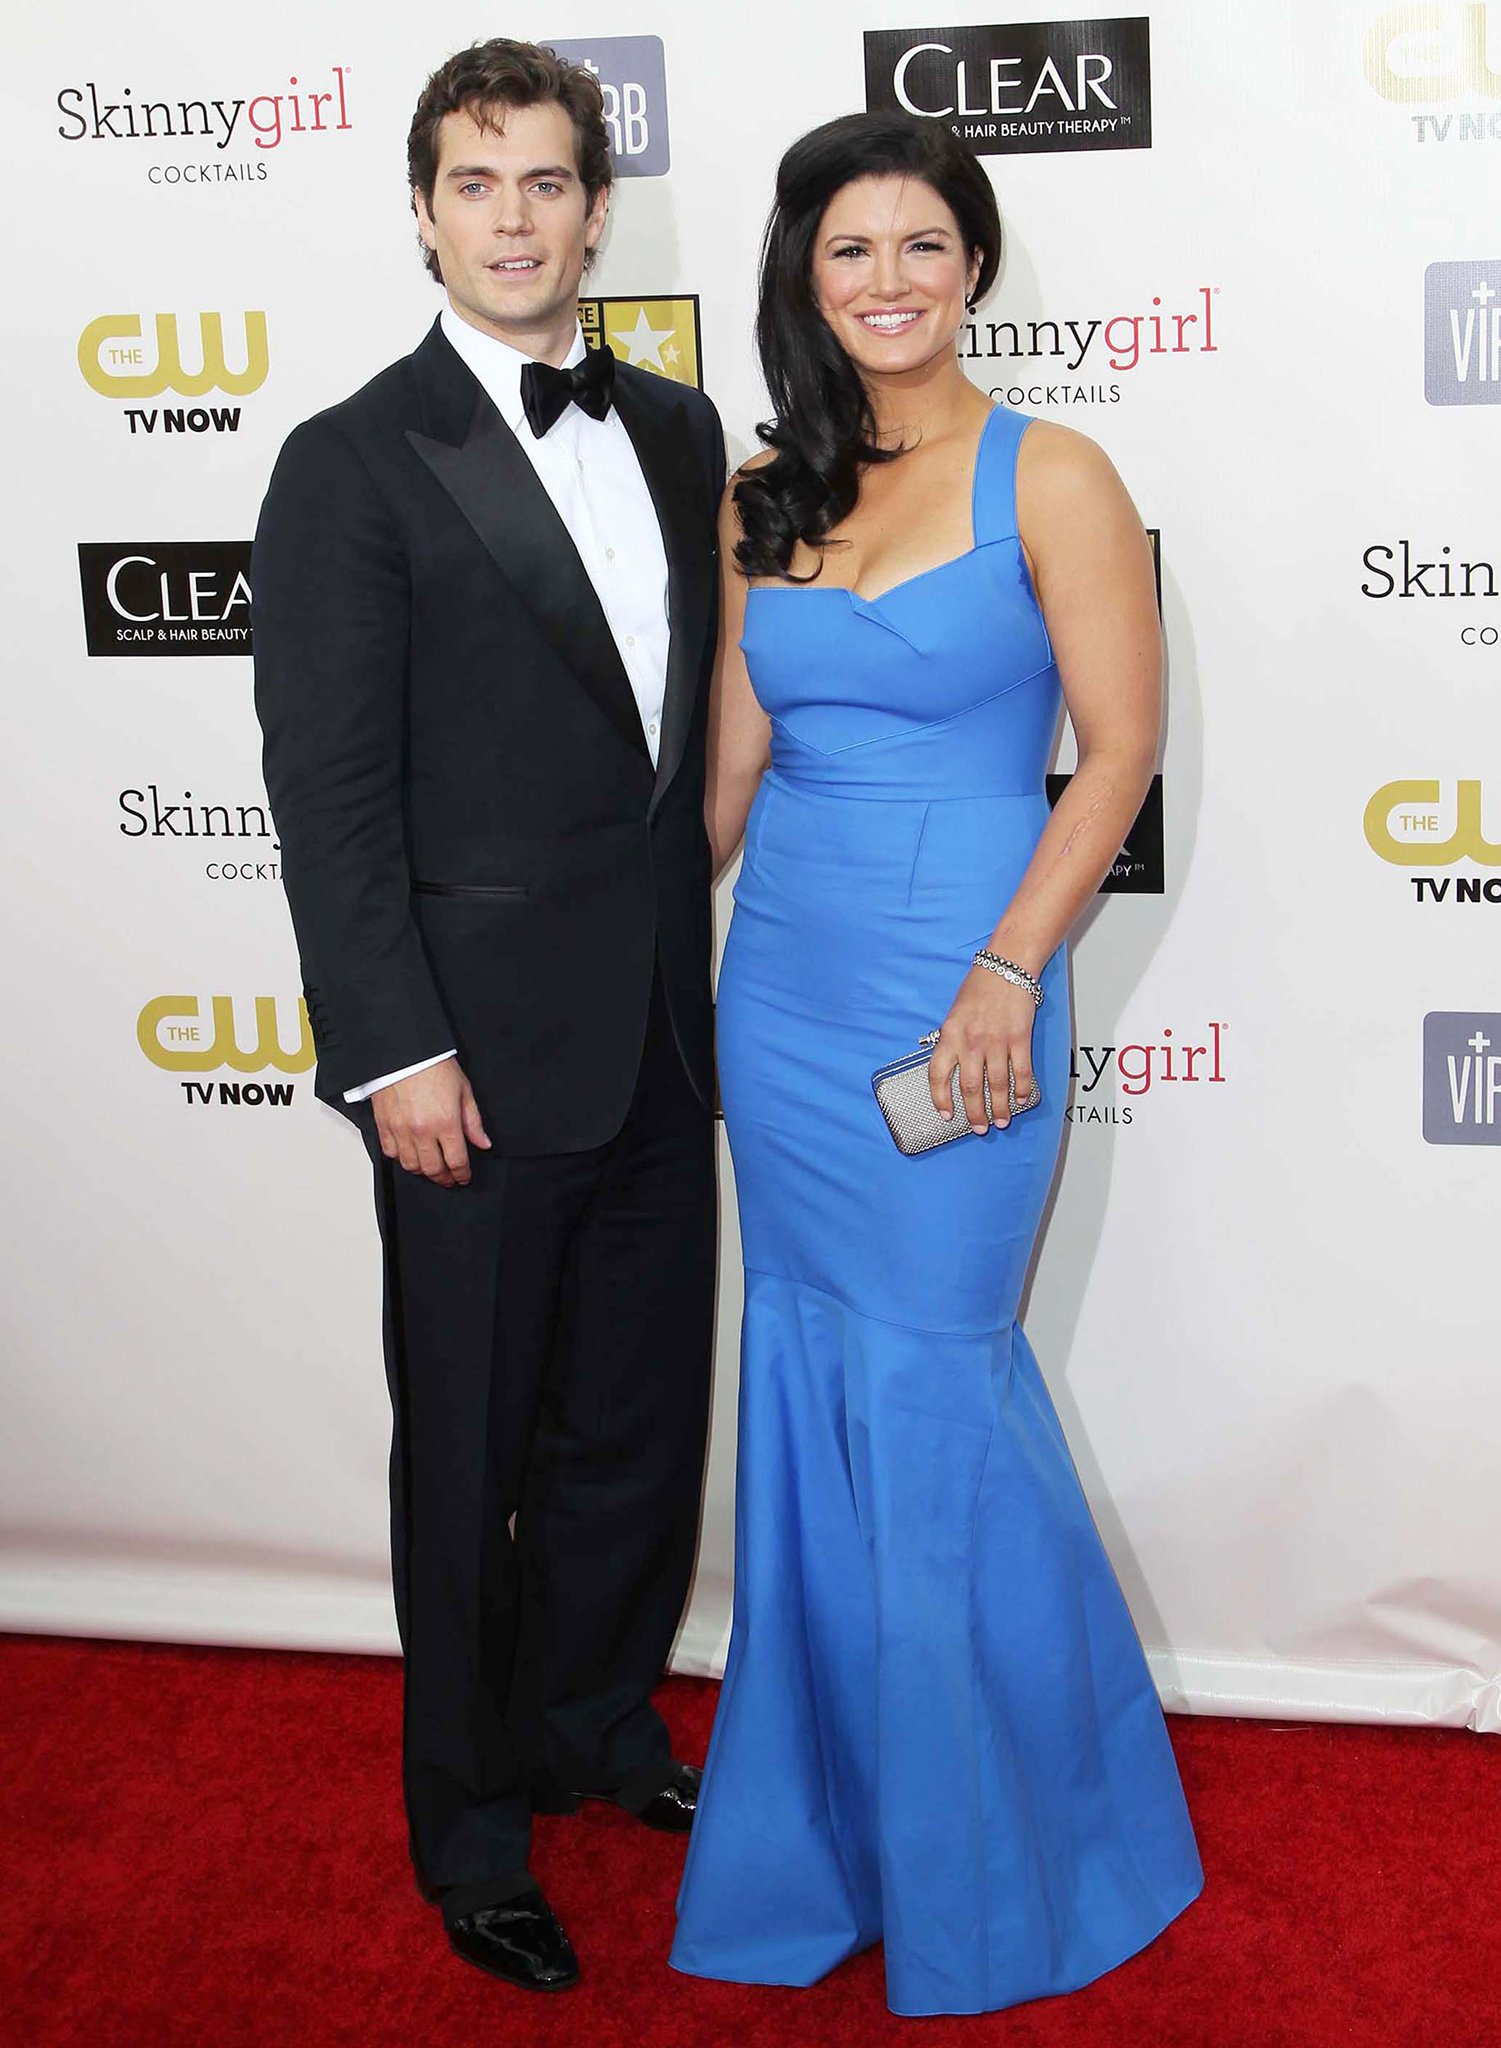 Henry Cavill and Gina Carano, pictured at the 18th Annual Critics' Choice Movie Awards, began dating in 2012